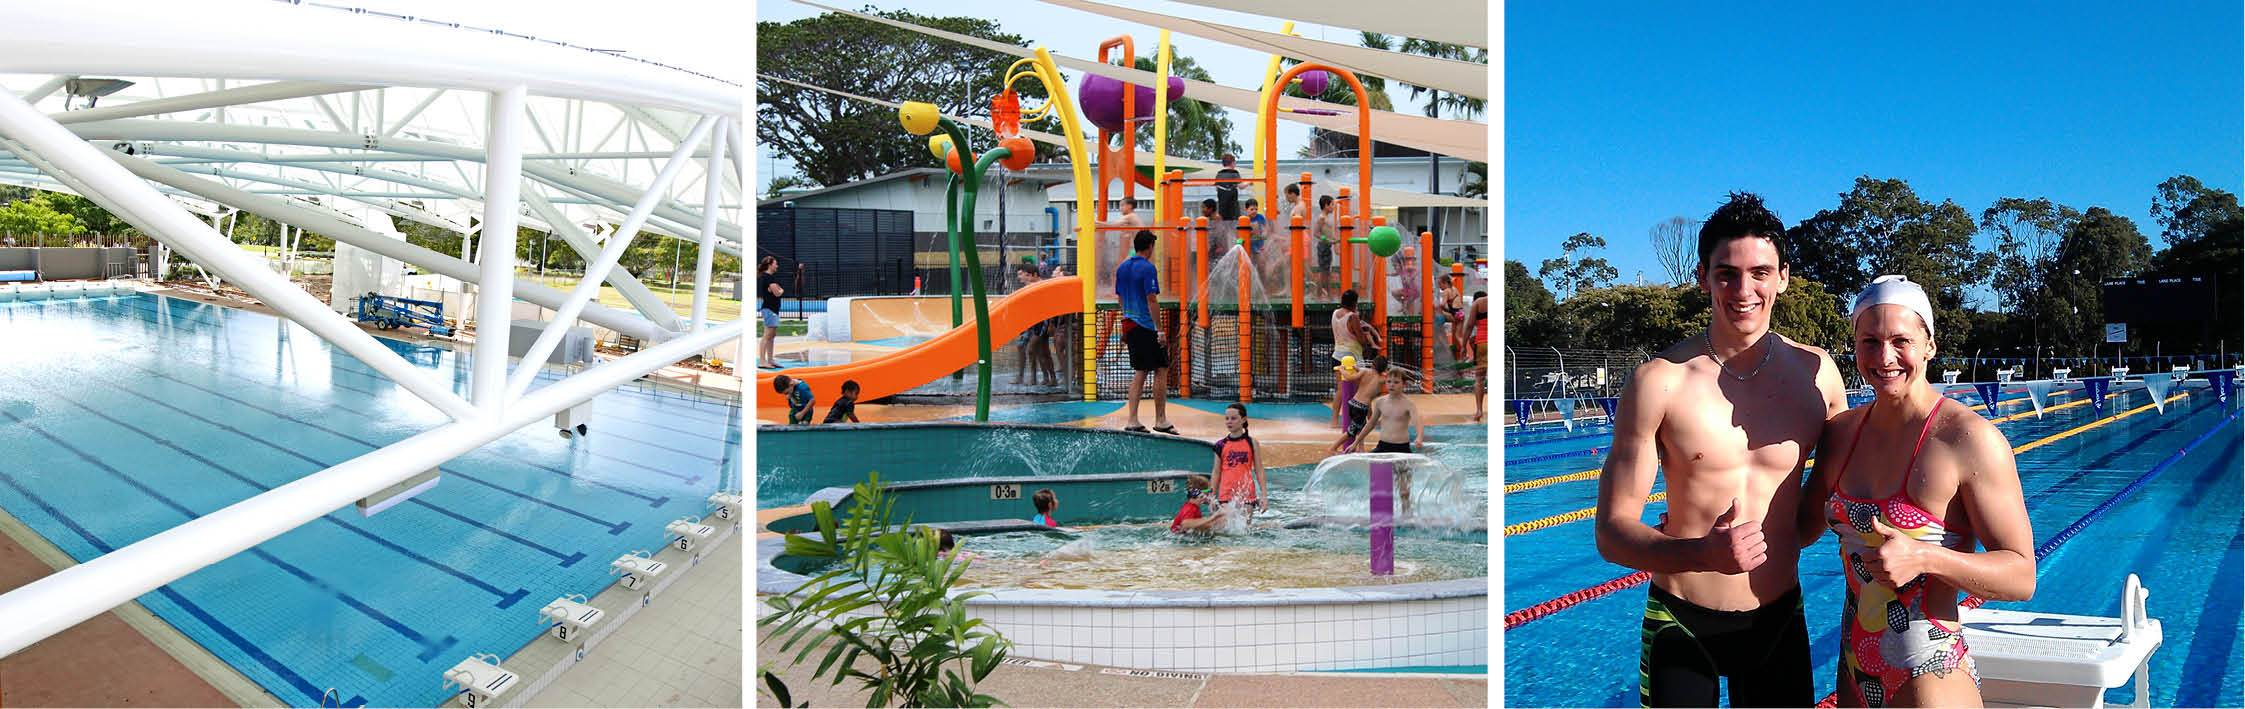 Pools And Water Play